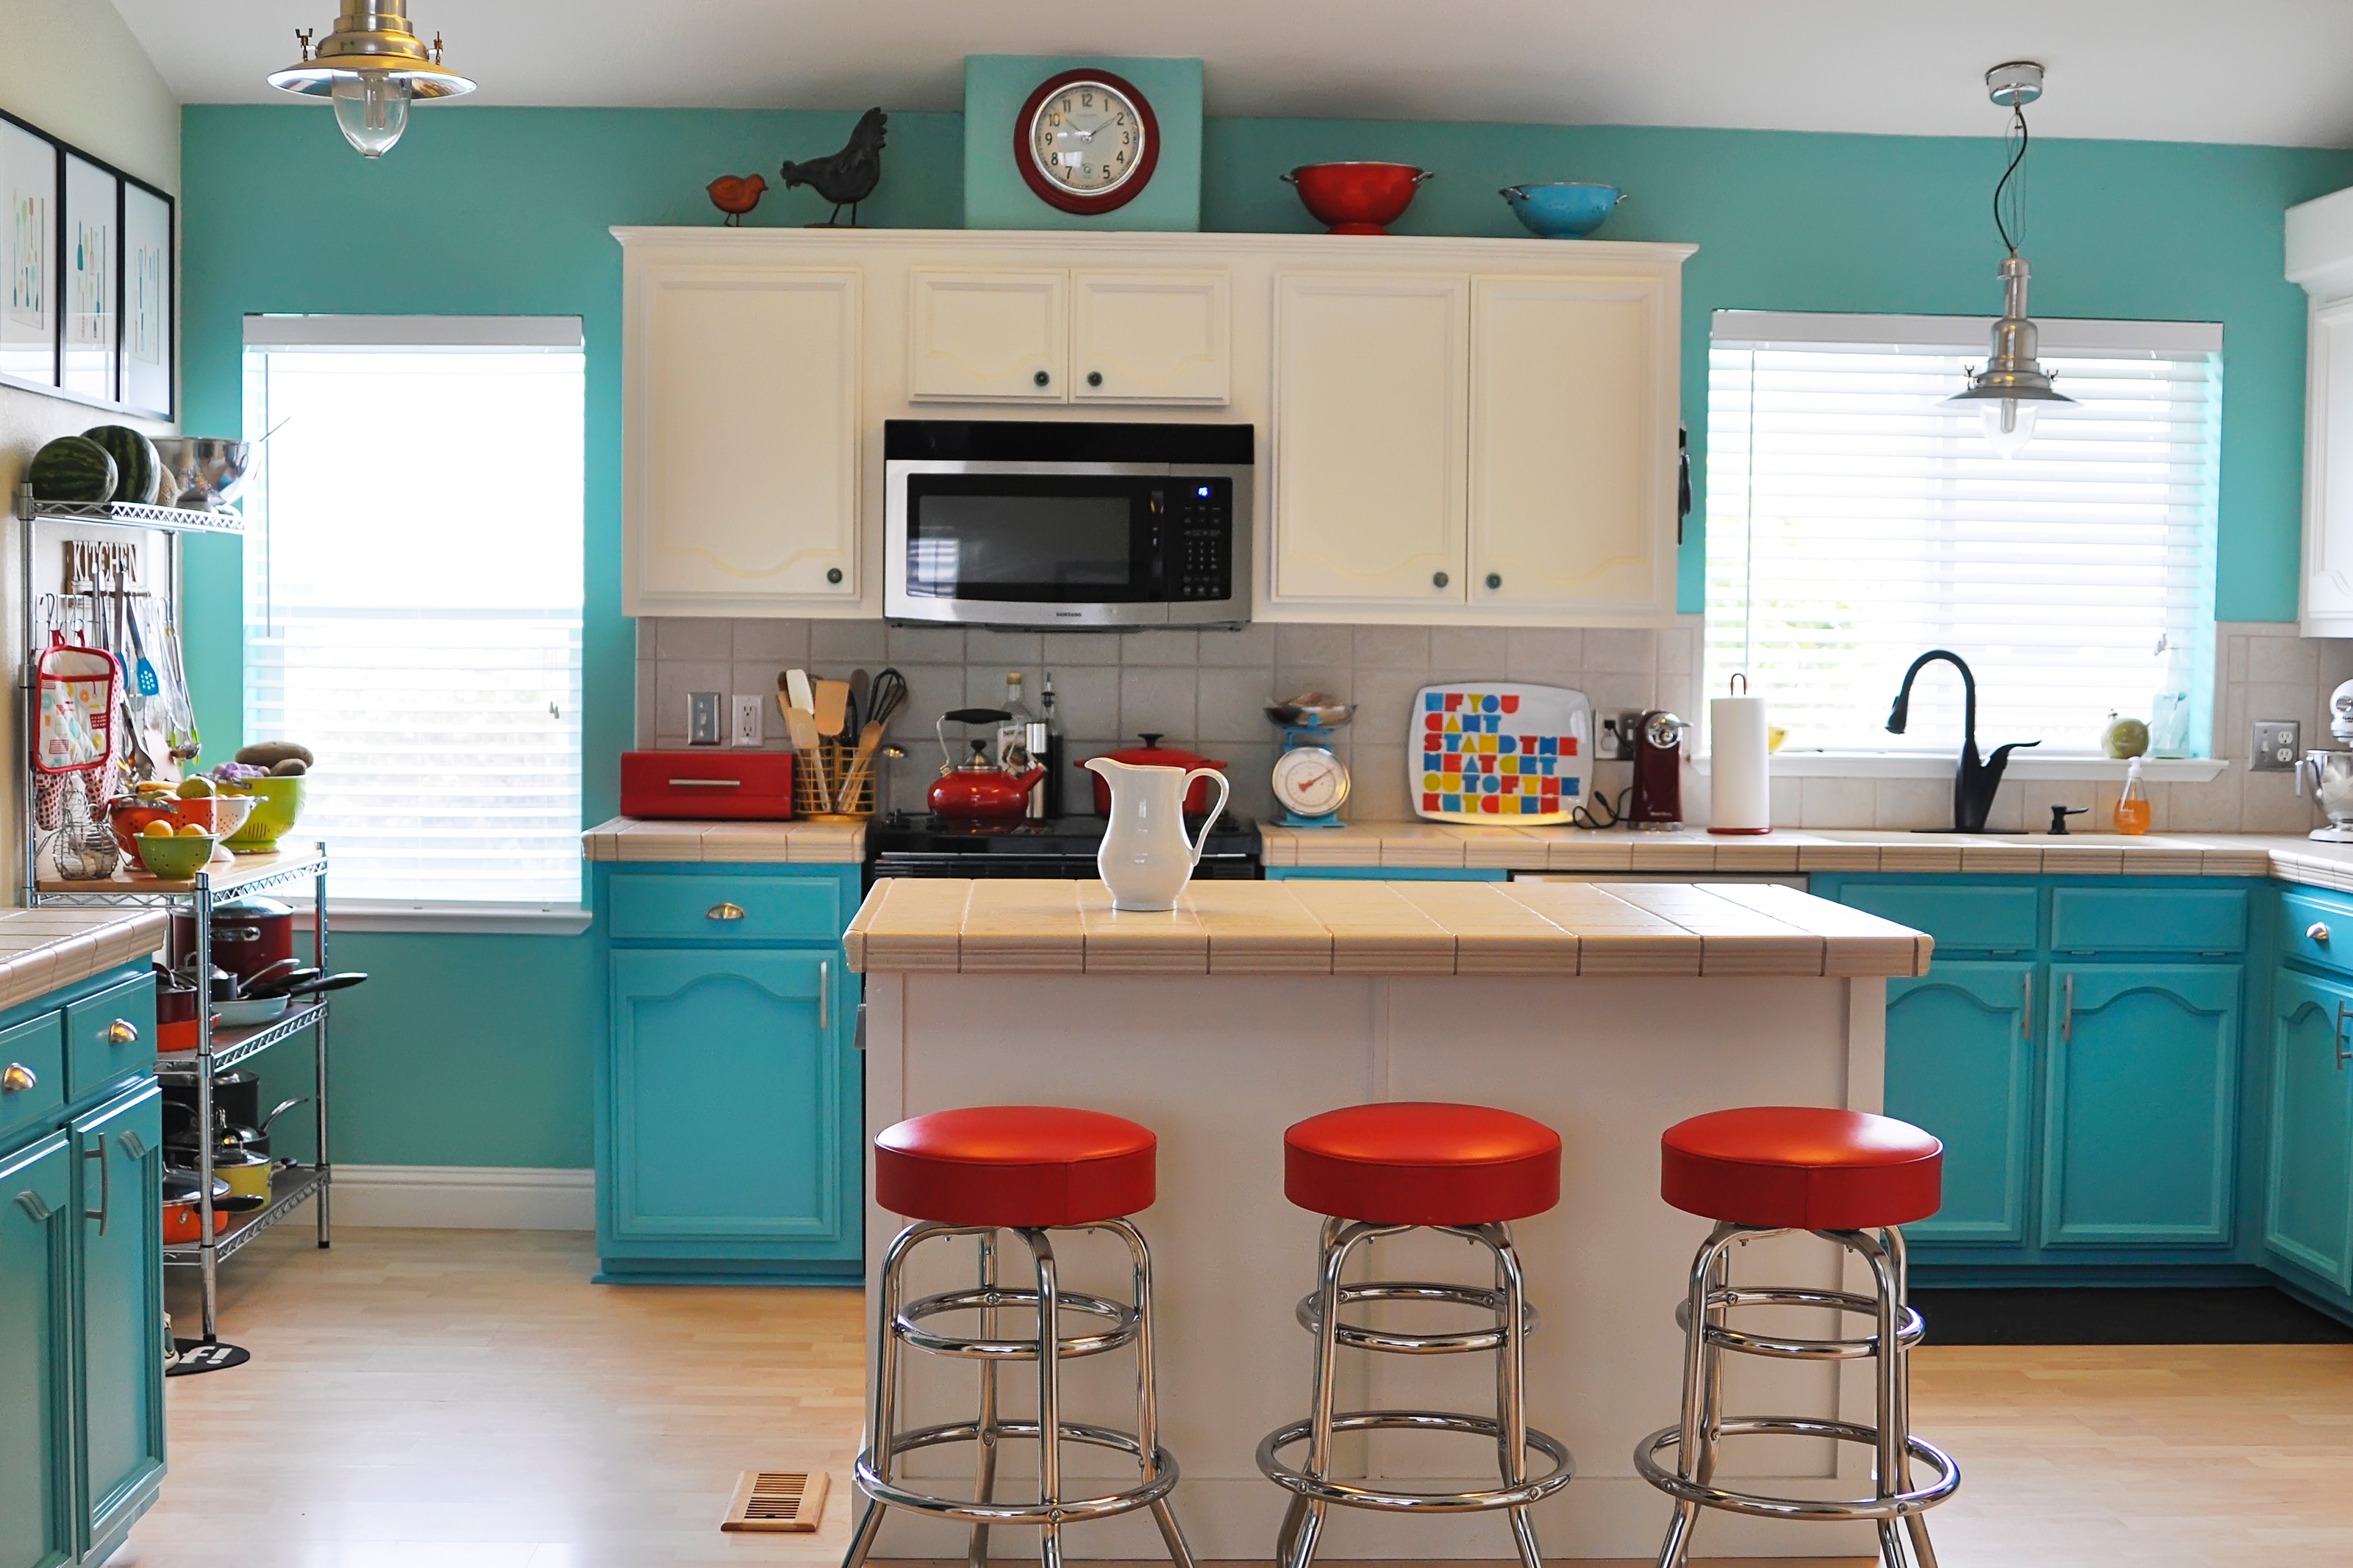 Colorfully painted kitchen with white cabinets